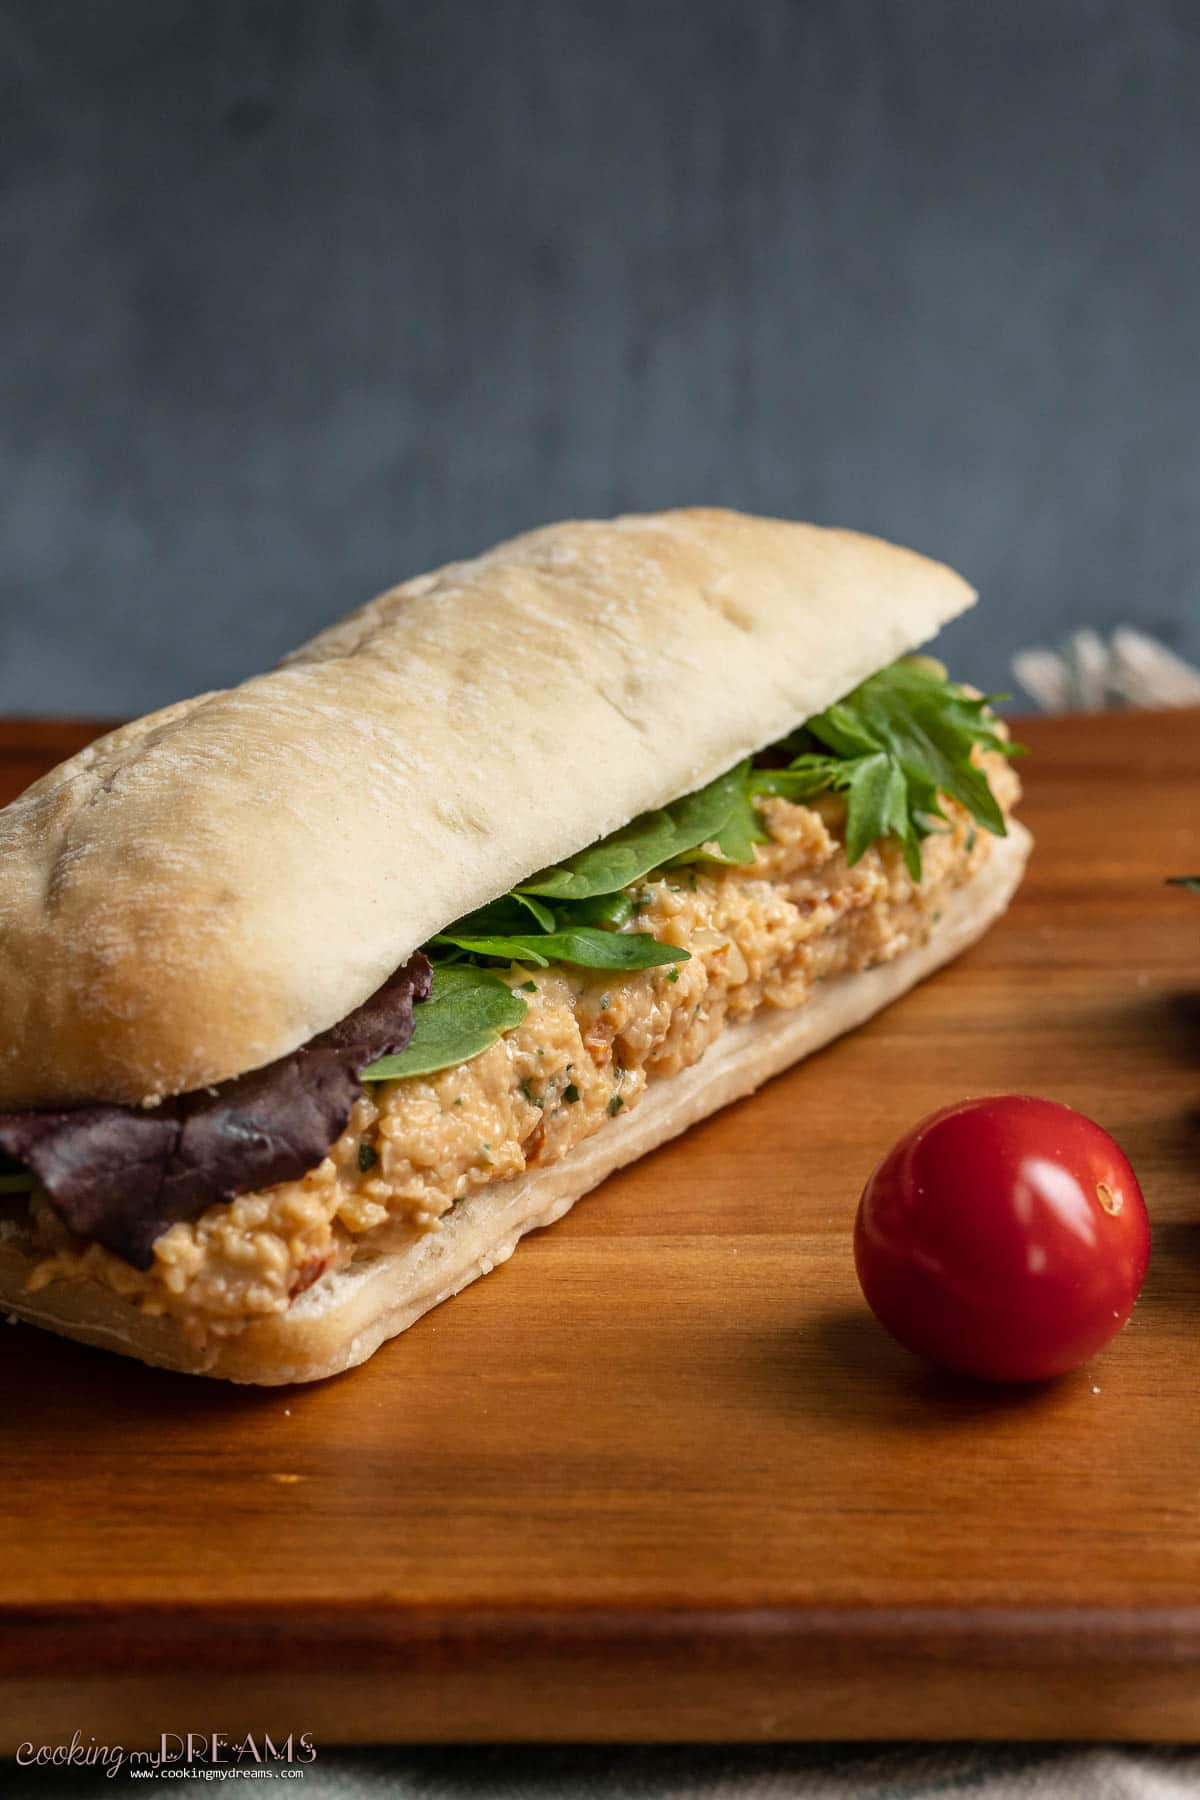 spicy chickpea salad sandwich on a wooden board